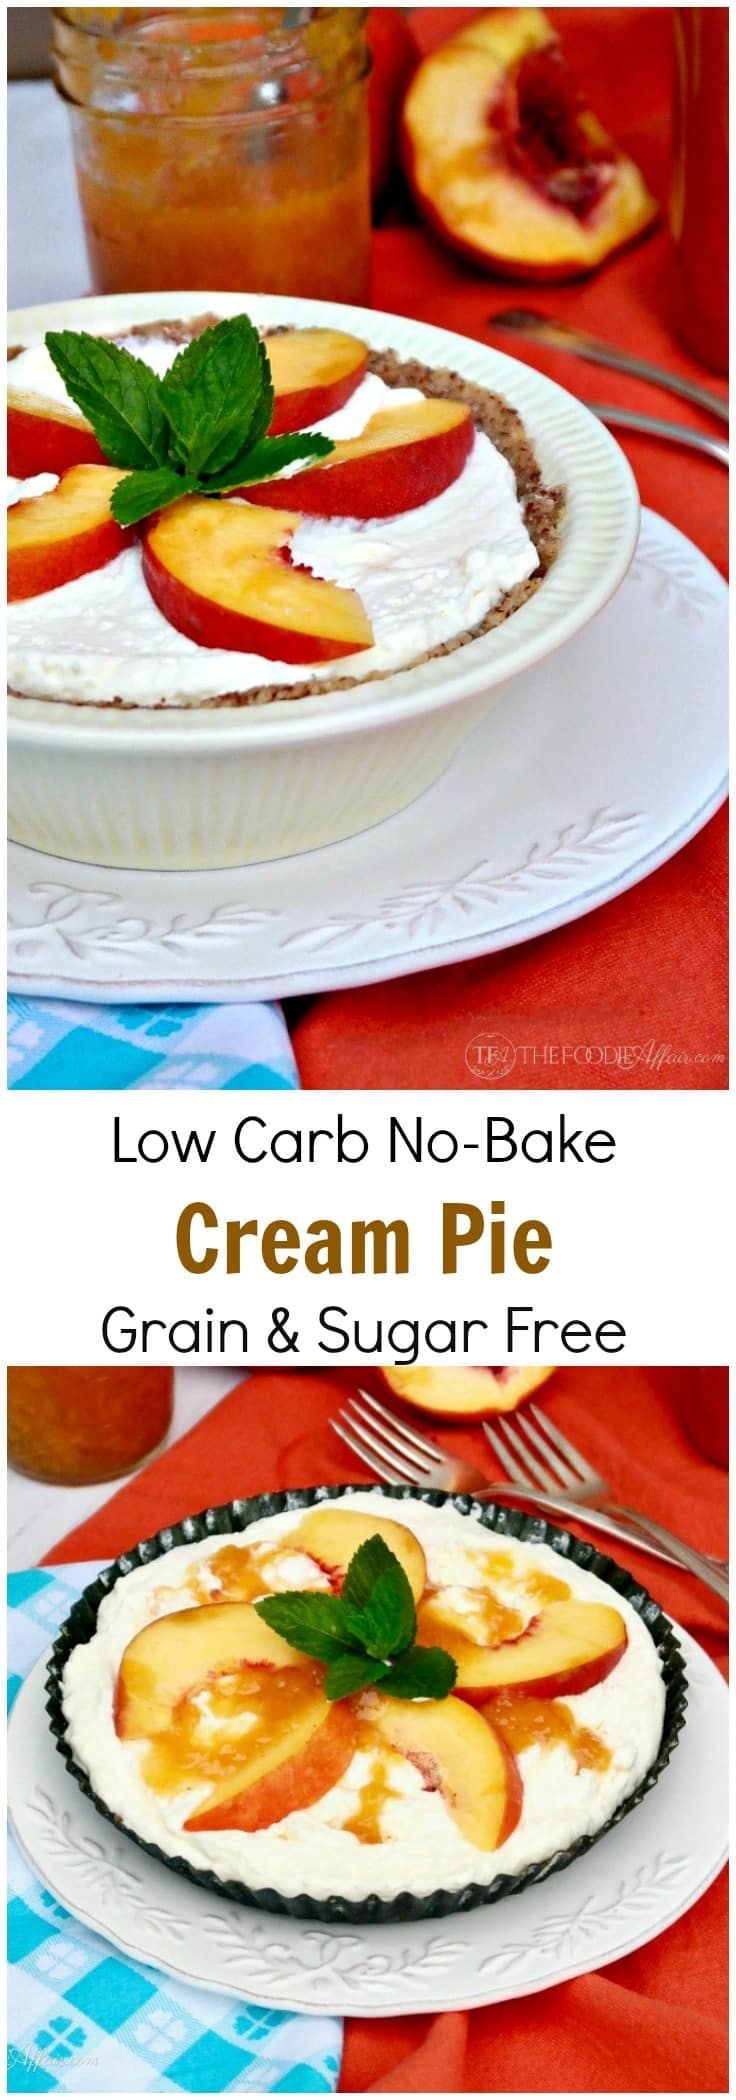 This Low Carb No Bake Cream Pie is grain and sugar free with only 5 carbs per slice. Enjoy each creamy bite as it is or add your favorite topping!